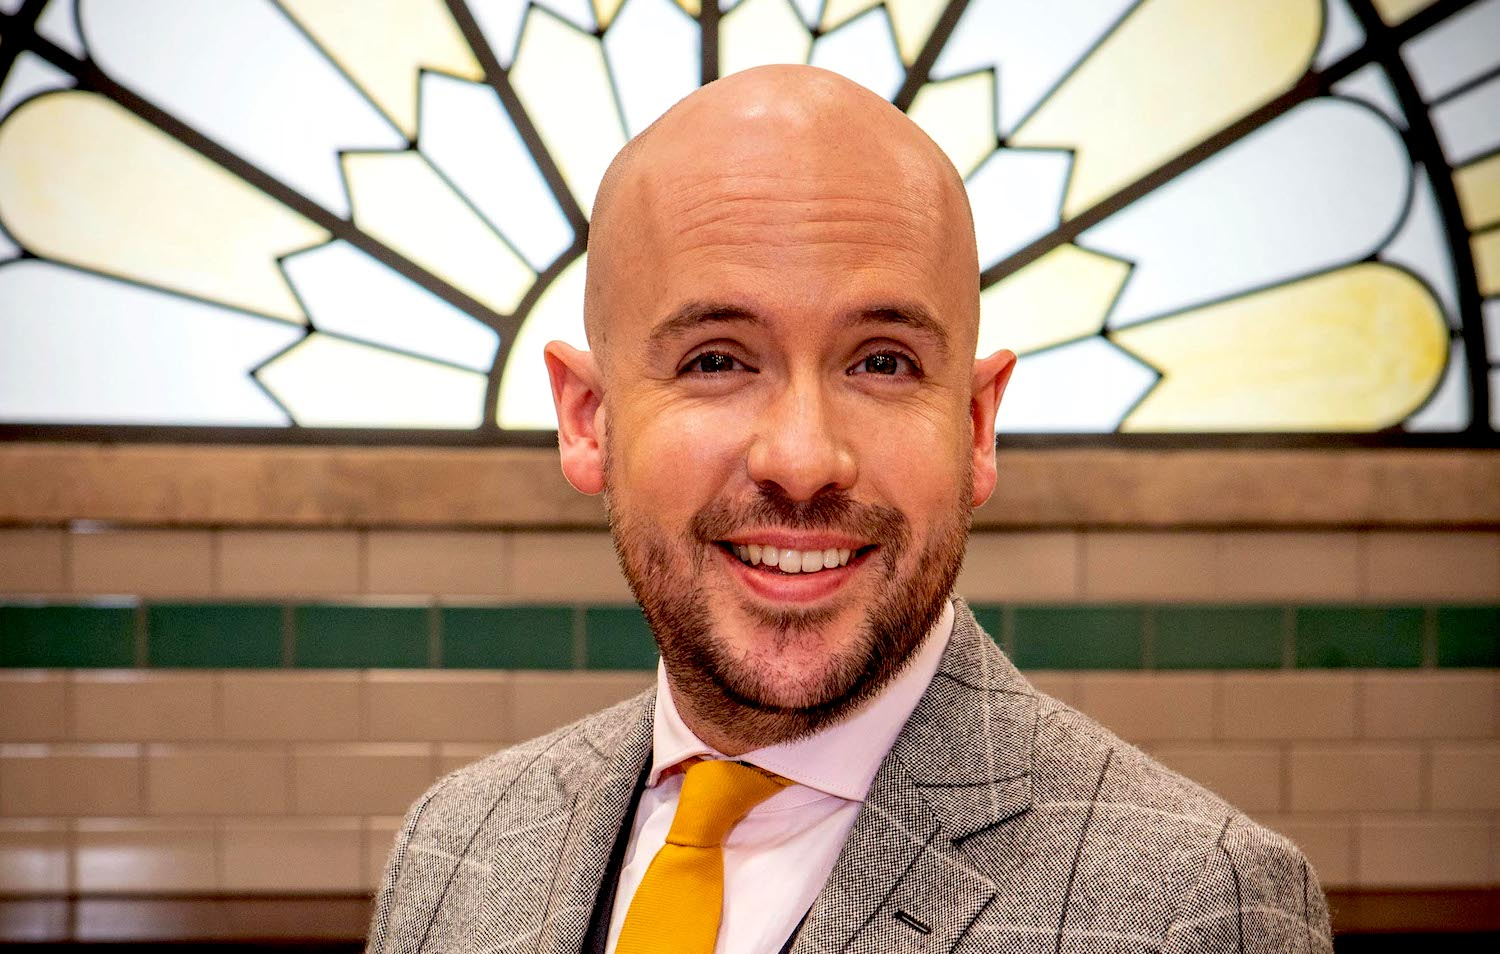 Who is Tom Allen? Bake Off: The Professionals host's little known Doctor Who role revealed